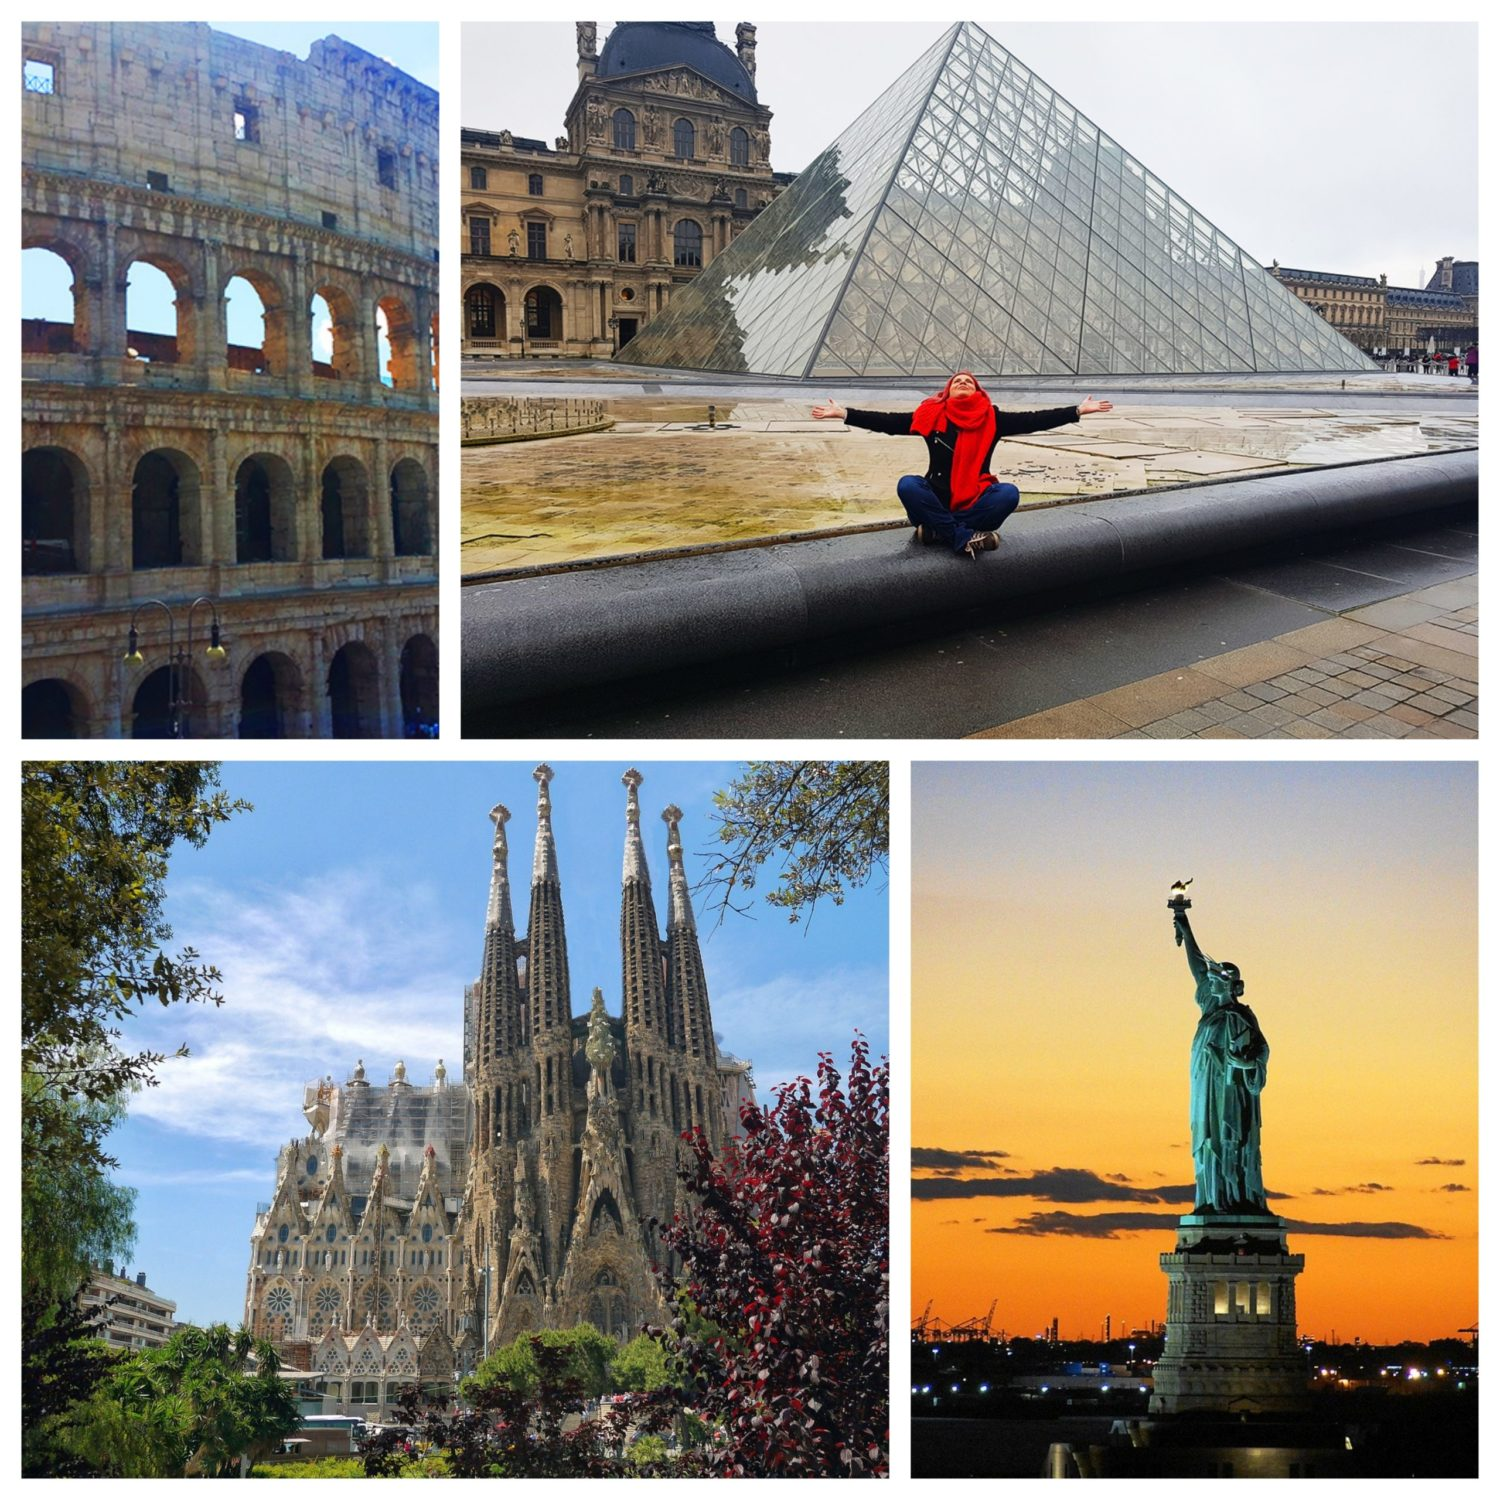 10 Best Tourist Attractions in the World in 2019